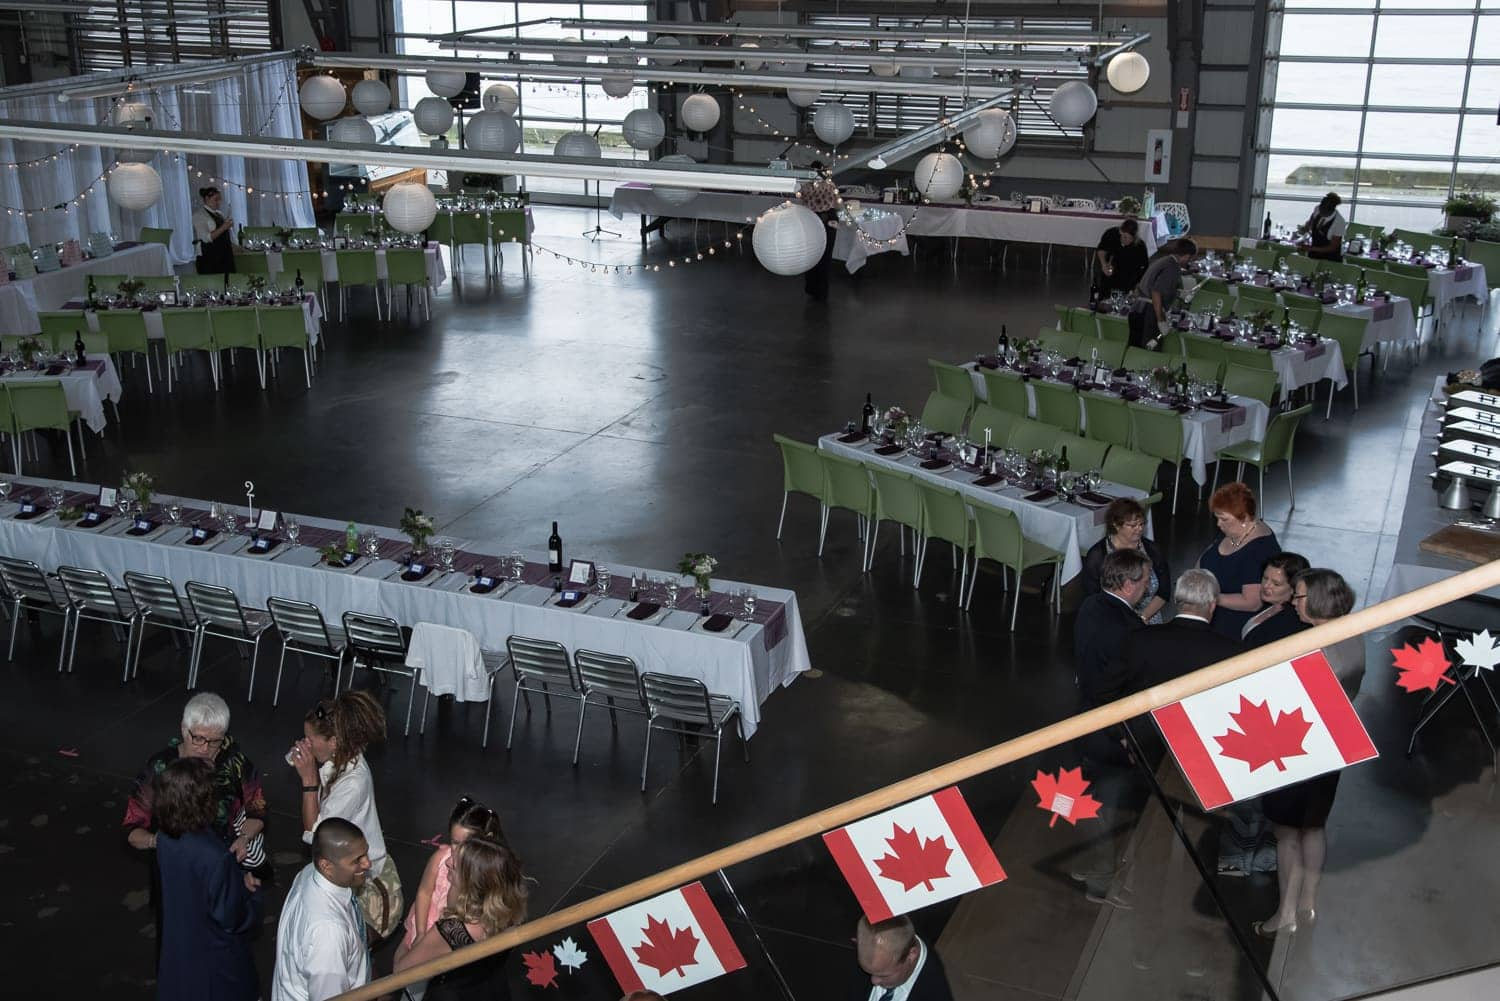 a wedding floor set up at the Halifax Seaport Farmer's Market